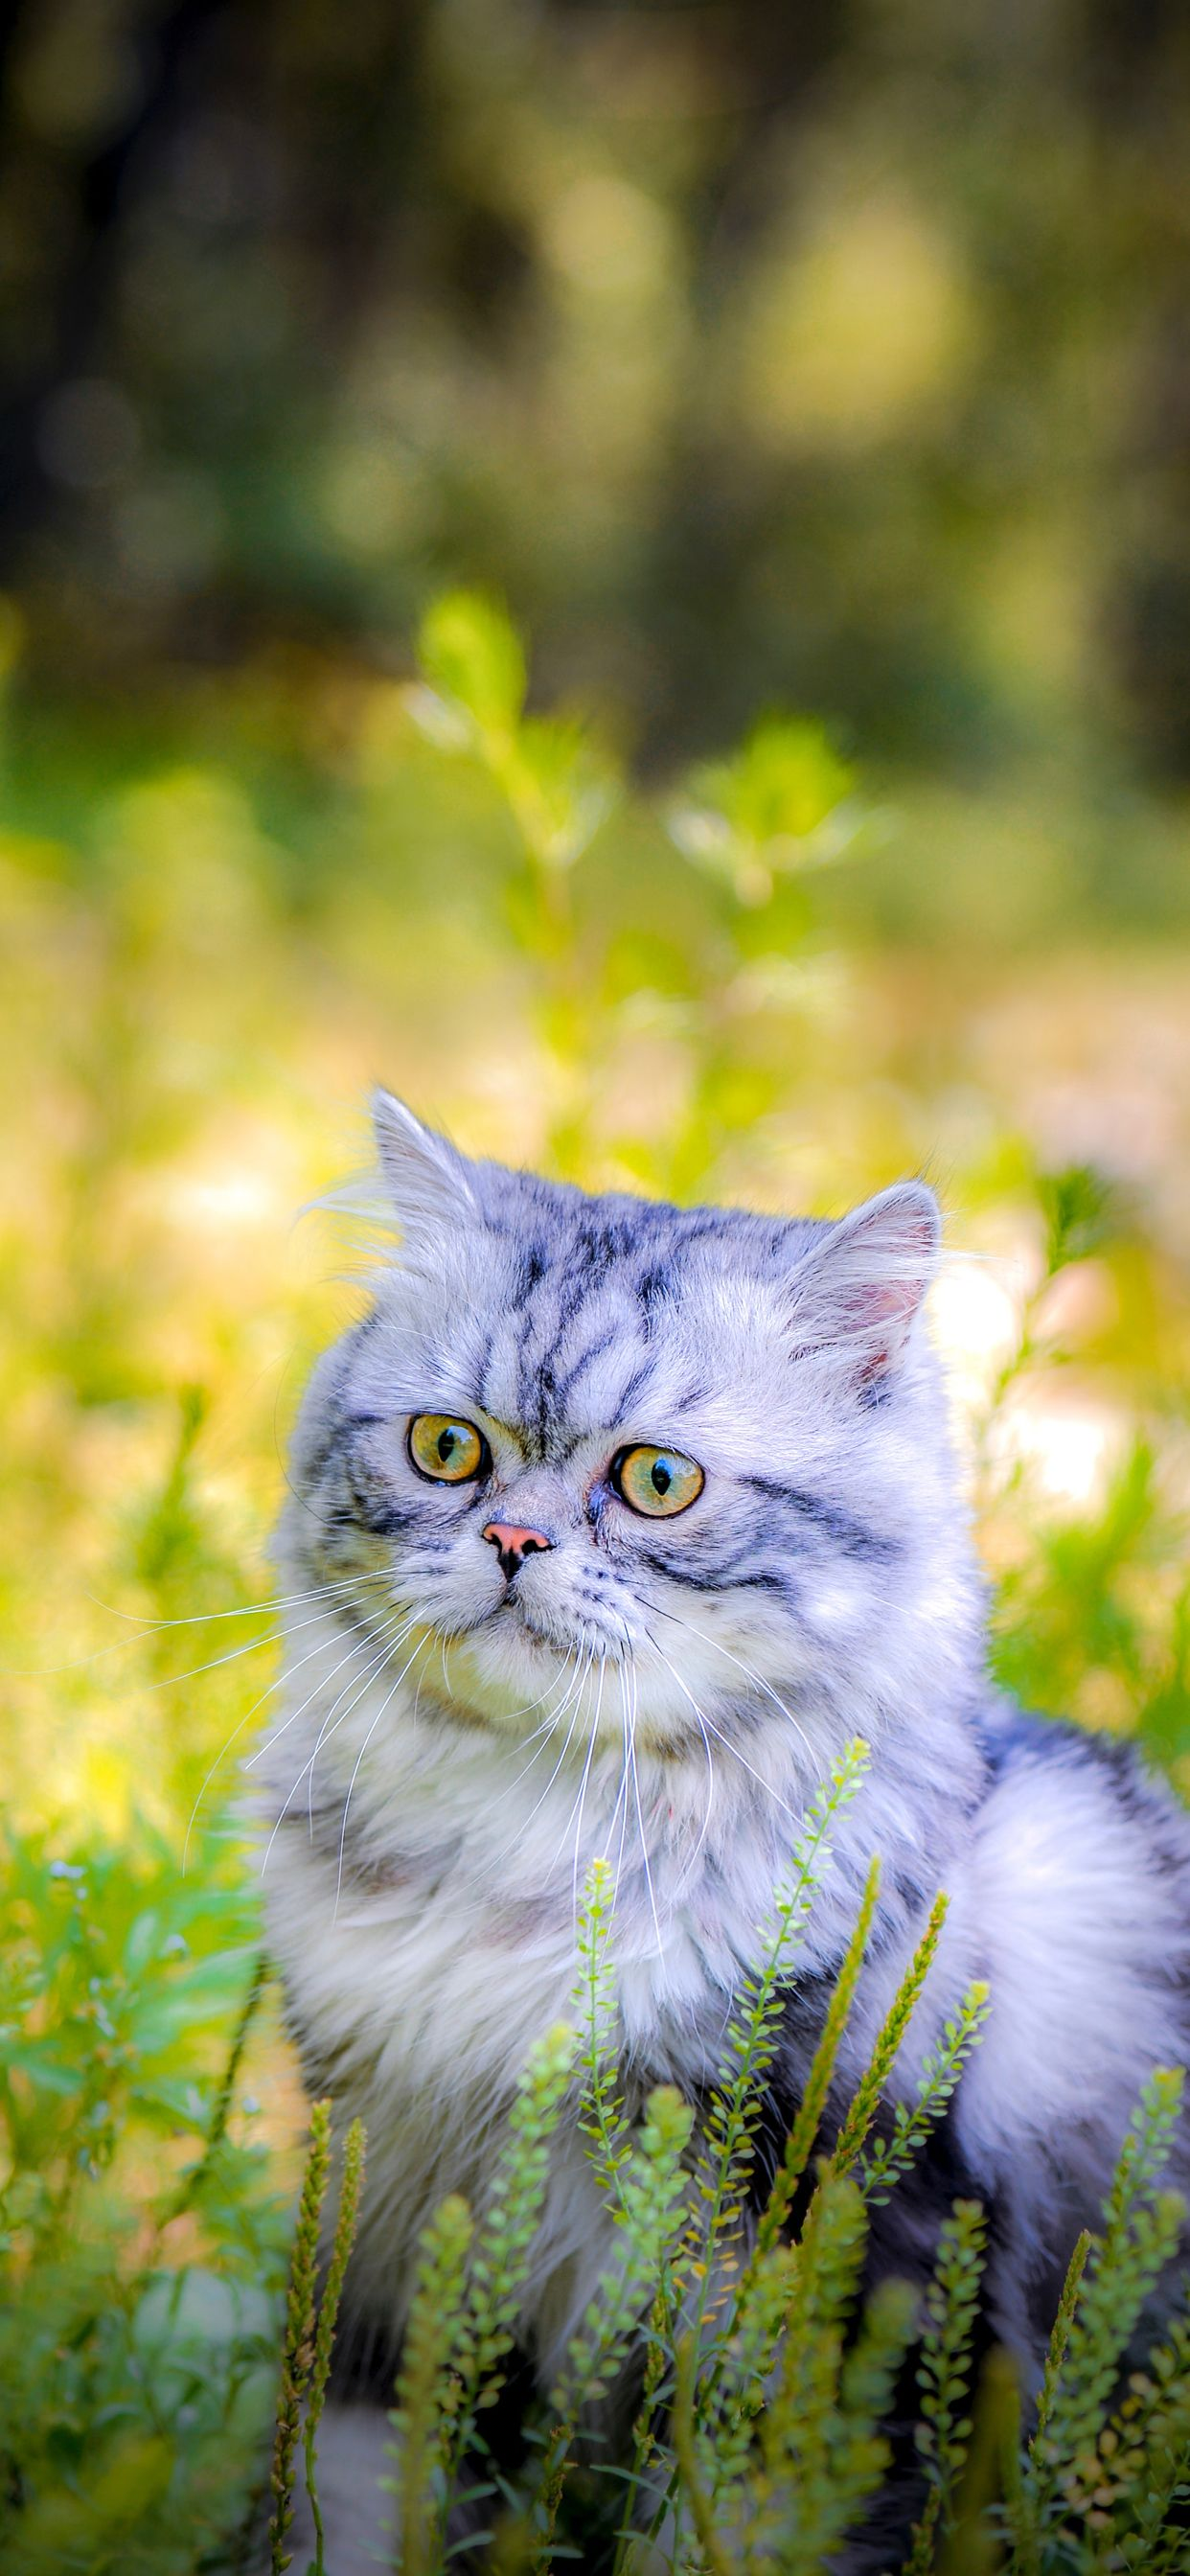 Cat Phone Wallpapers July 2020 I Like Cats Very Much Cat Phone Wallpaper Cute Cat Wallpaper Cat Wallpaper